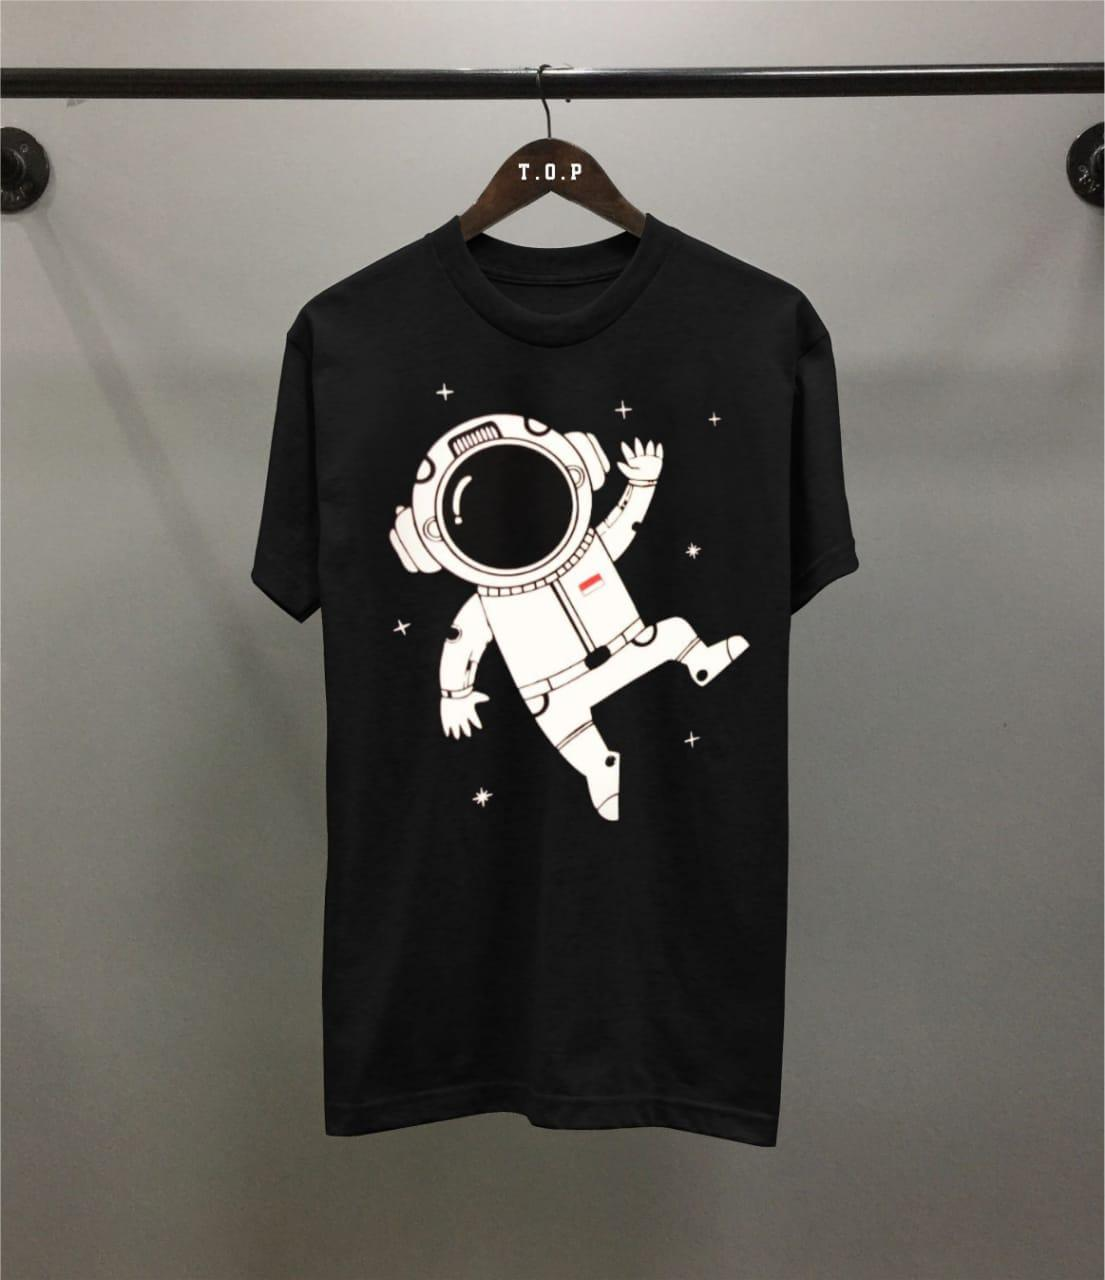 Buy Sell Cheapest Jqstar Kemeja Kasual Best Quality Product Deals Baju Fashion Panjang Distro Pria Kaos Astronot Hitam T Shir Hitamt Atasan Oblong Olahraga Unisex Shirt